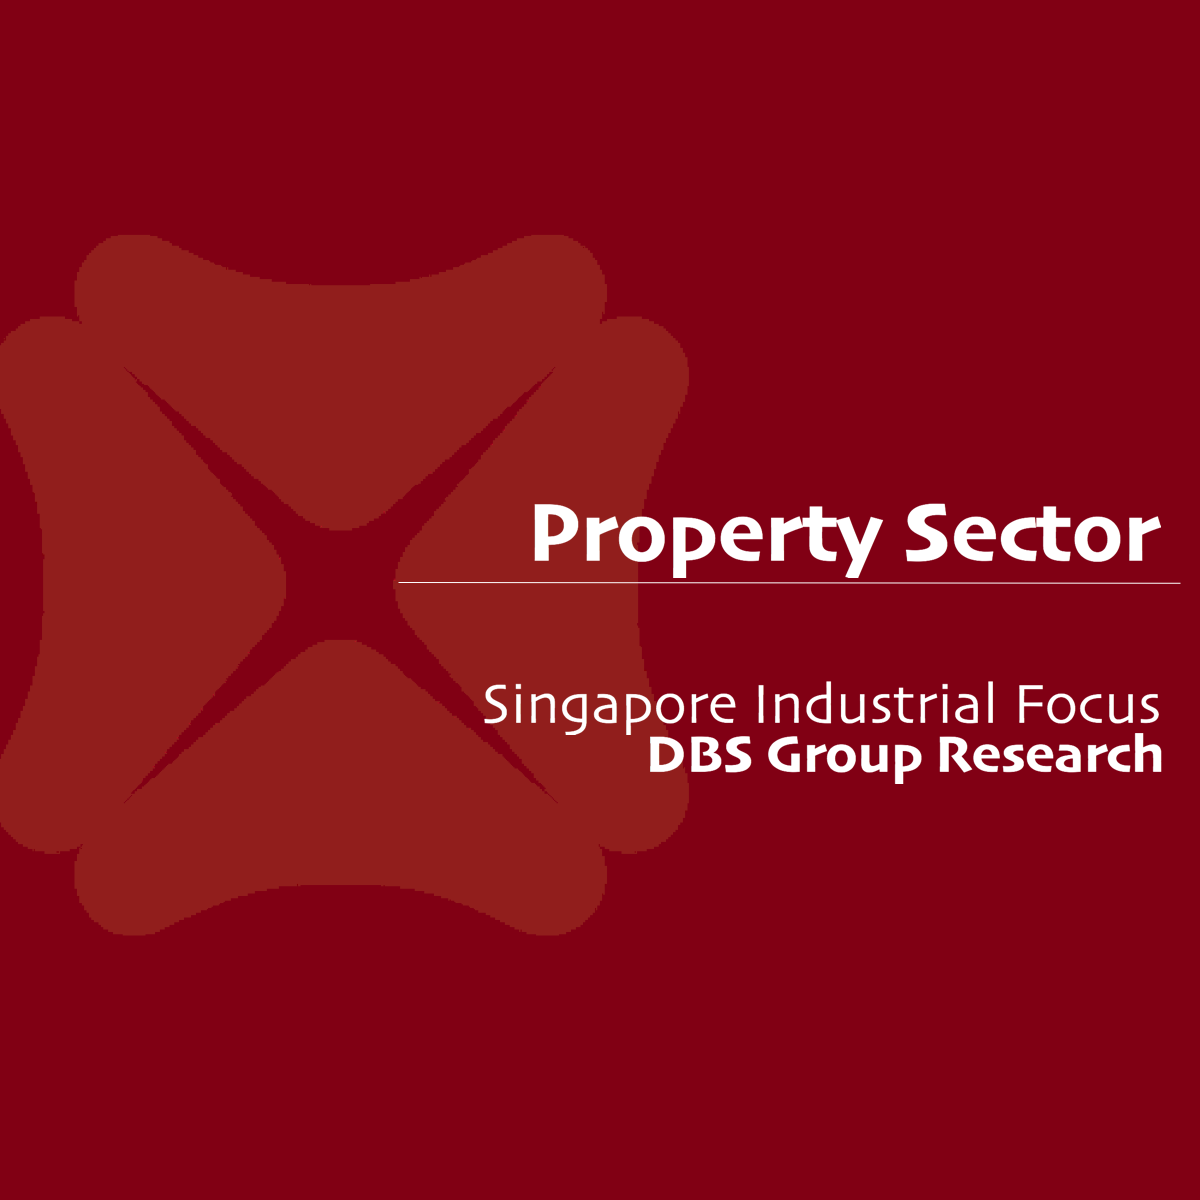 Singapore Property and REITs - DBS Vickers 2017-03-17: Catalysts abound